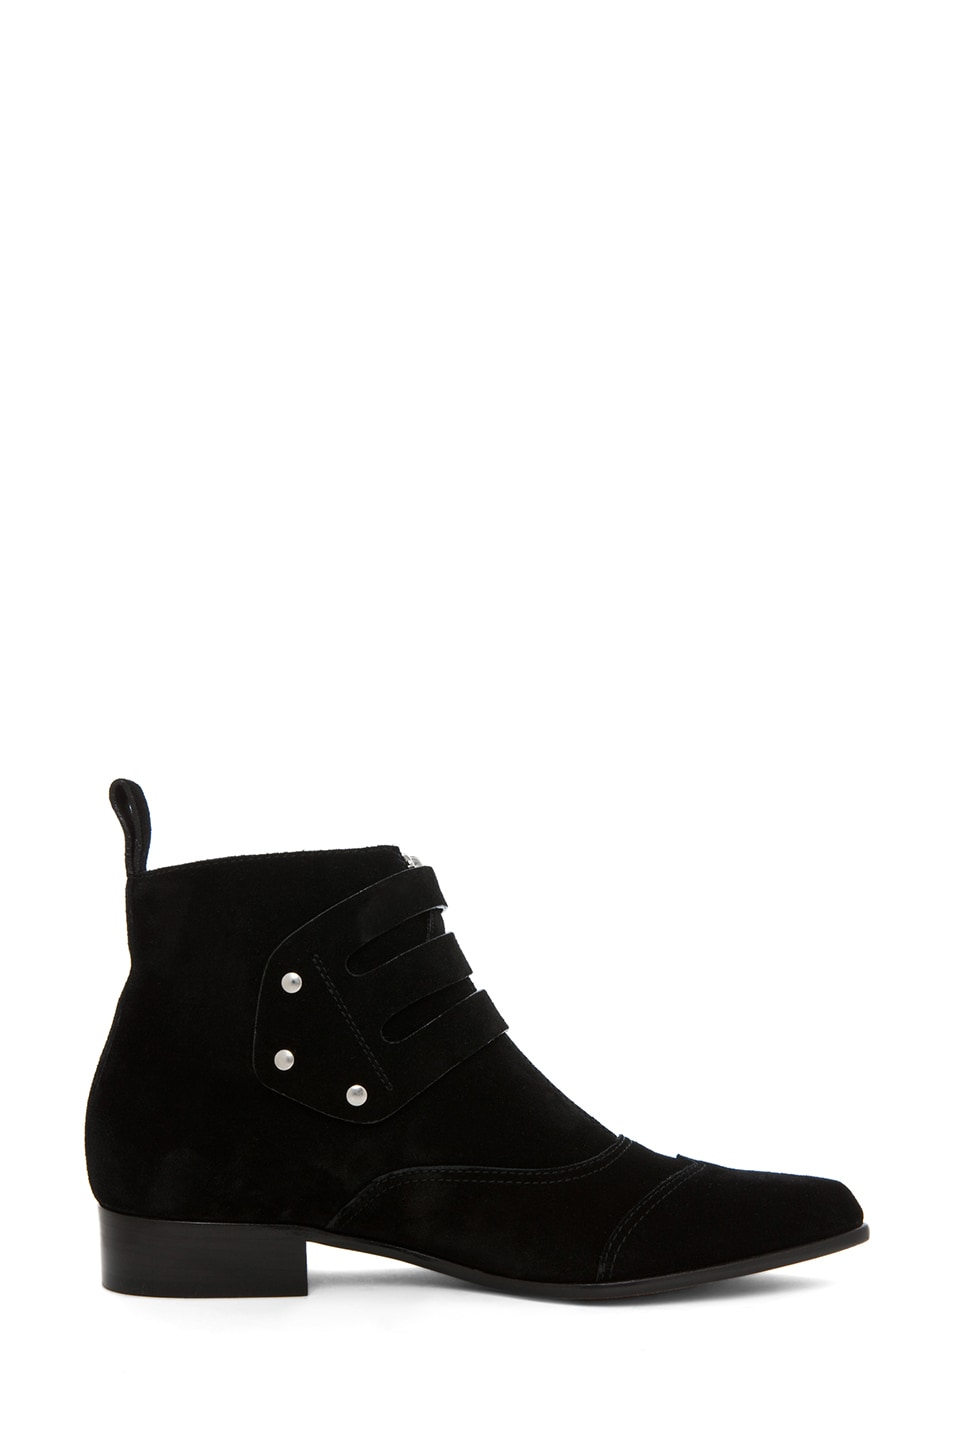 Image 5 of Tabitha Simmons Early Suede Bootie in Black